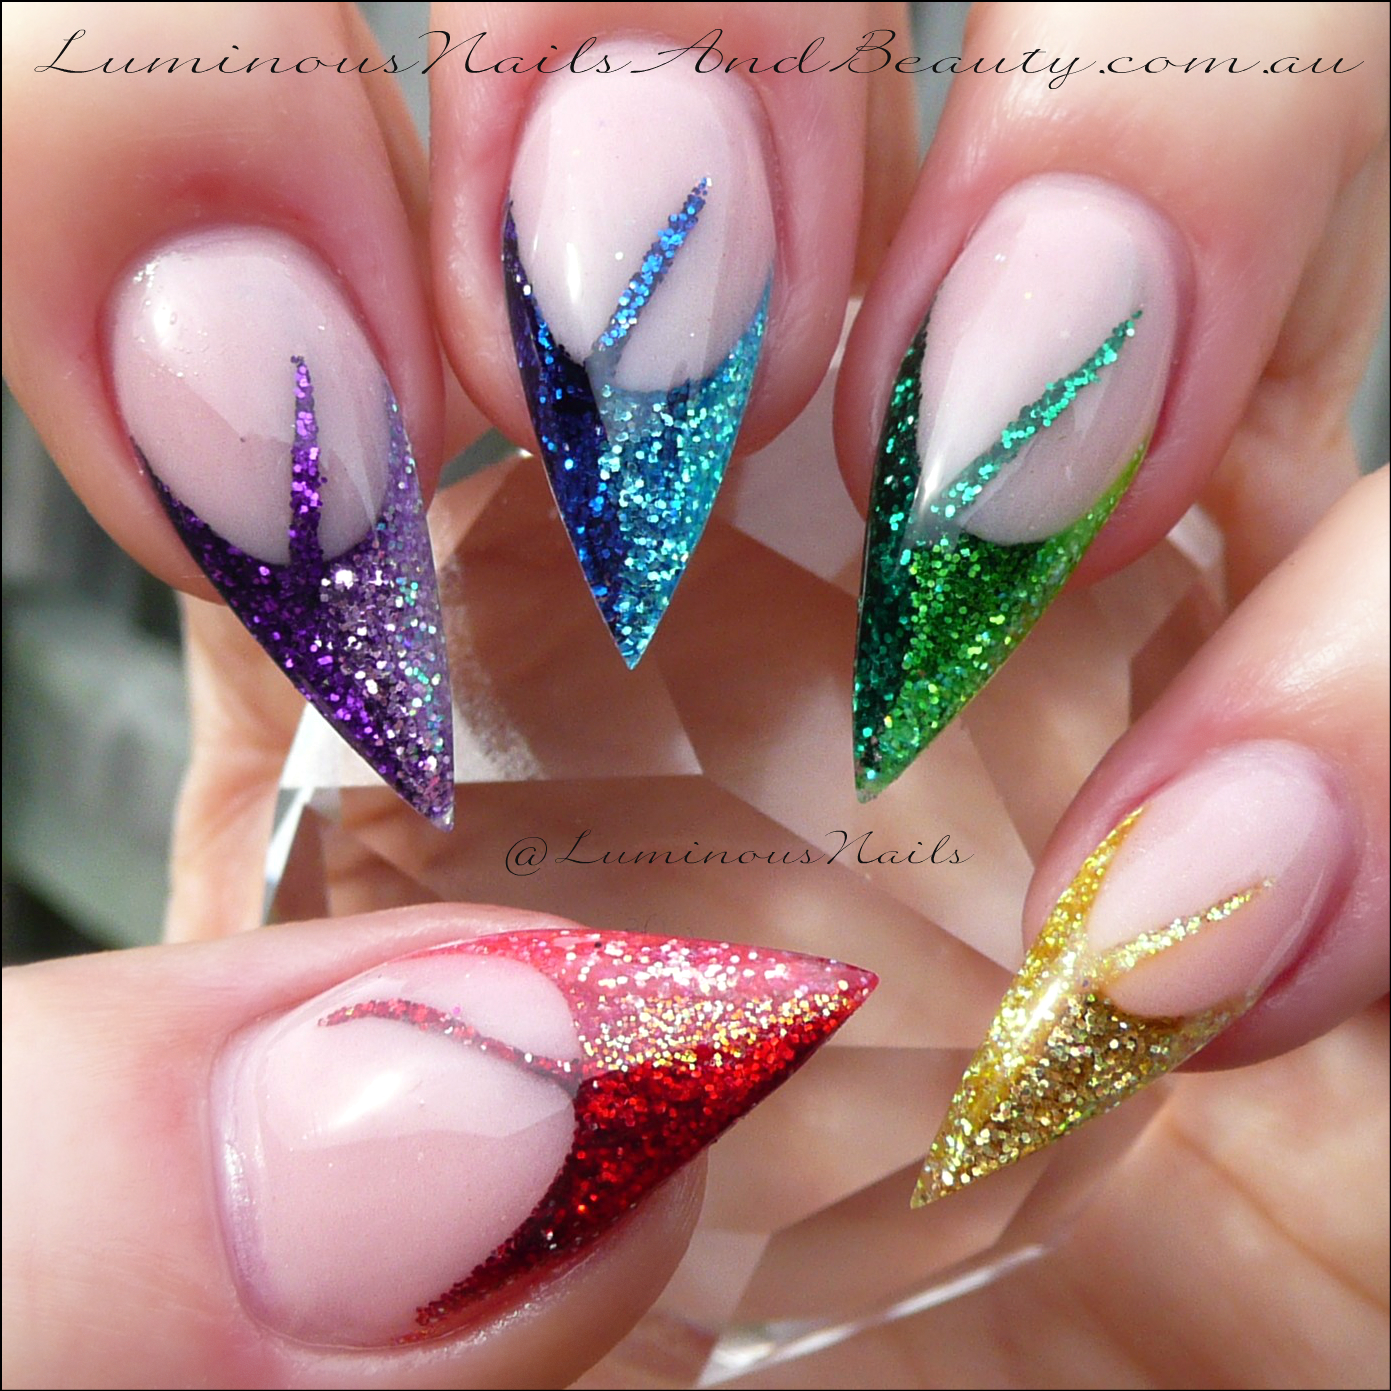 Luminous Nails: Rainbow Glitter Nails